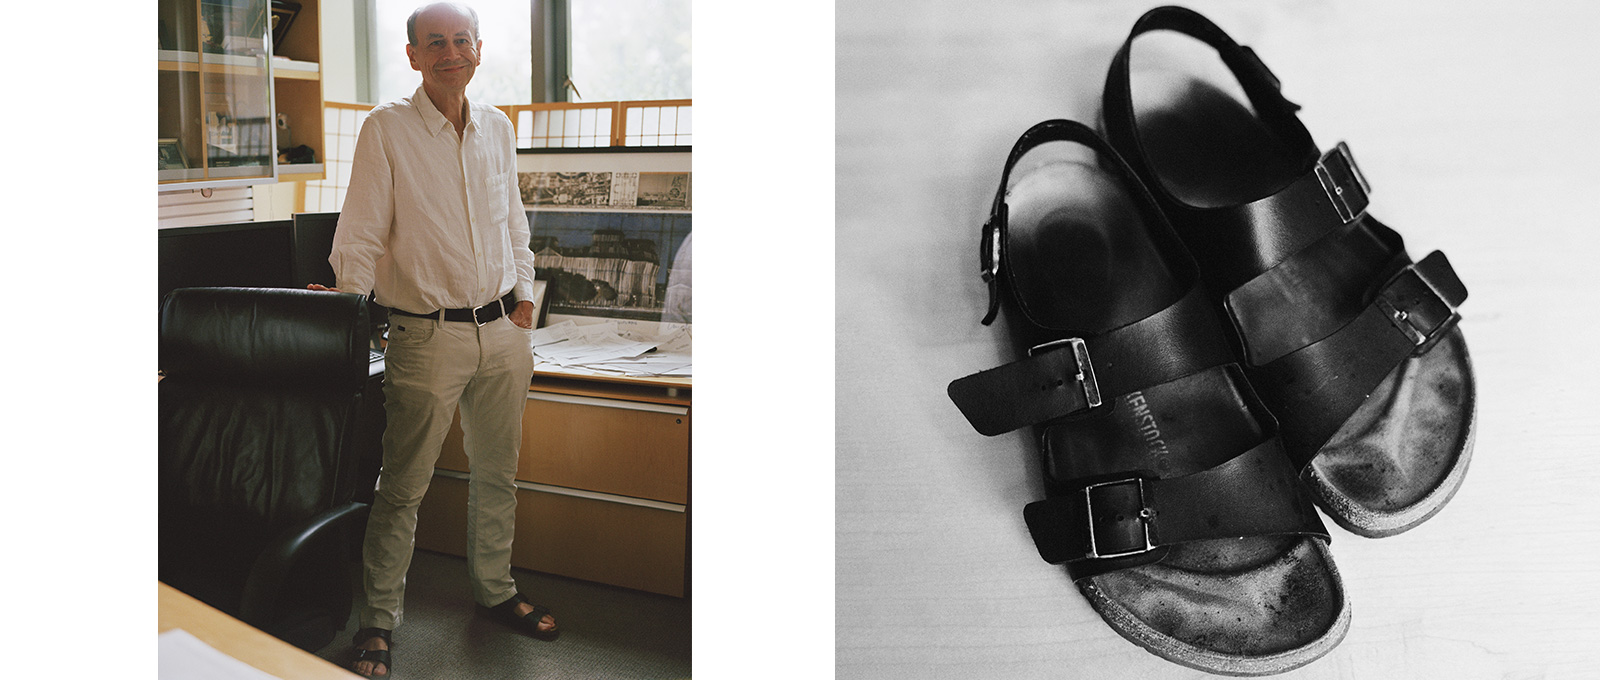 Thomas Sudhof in Birkenstocks